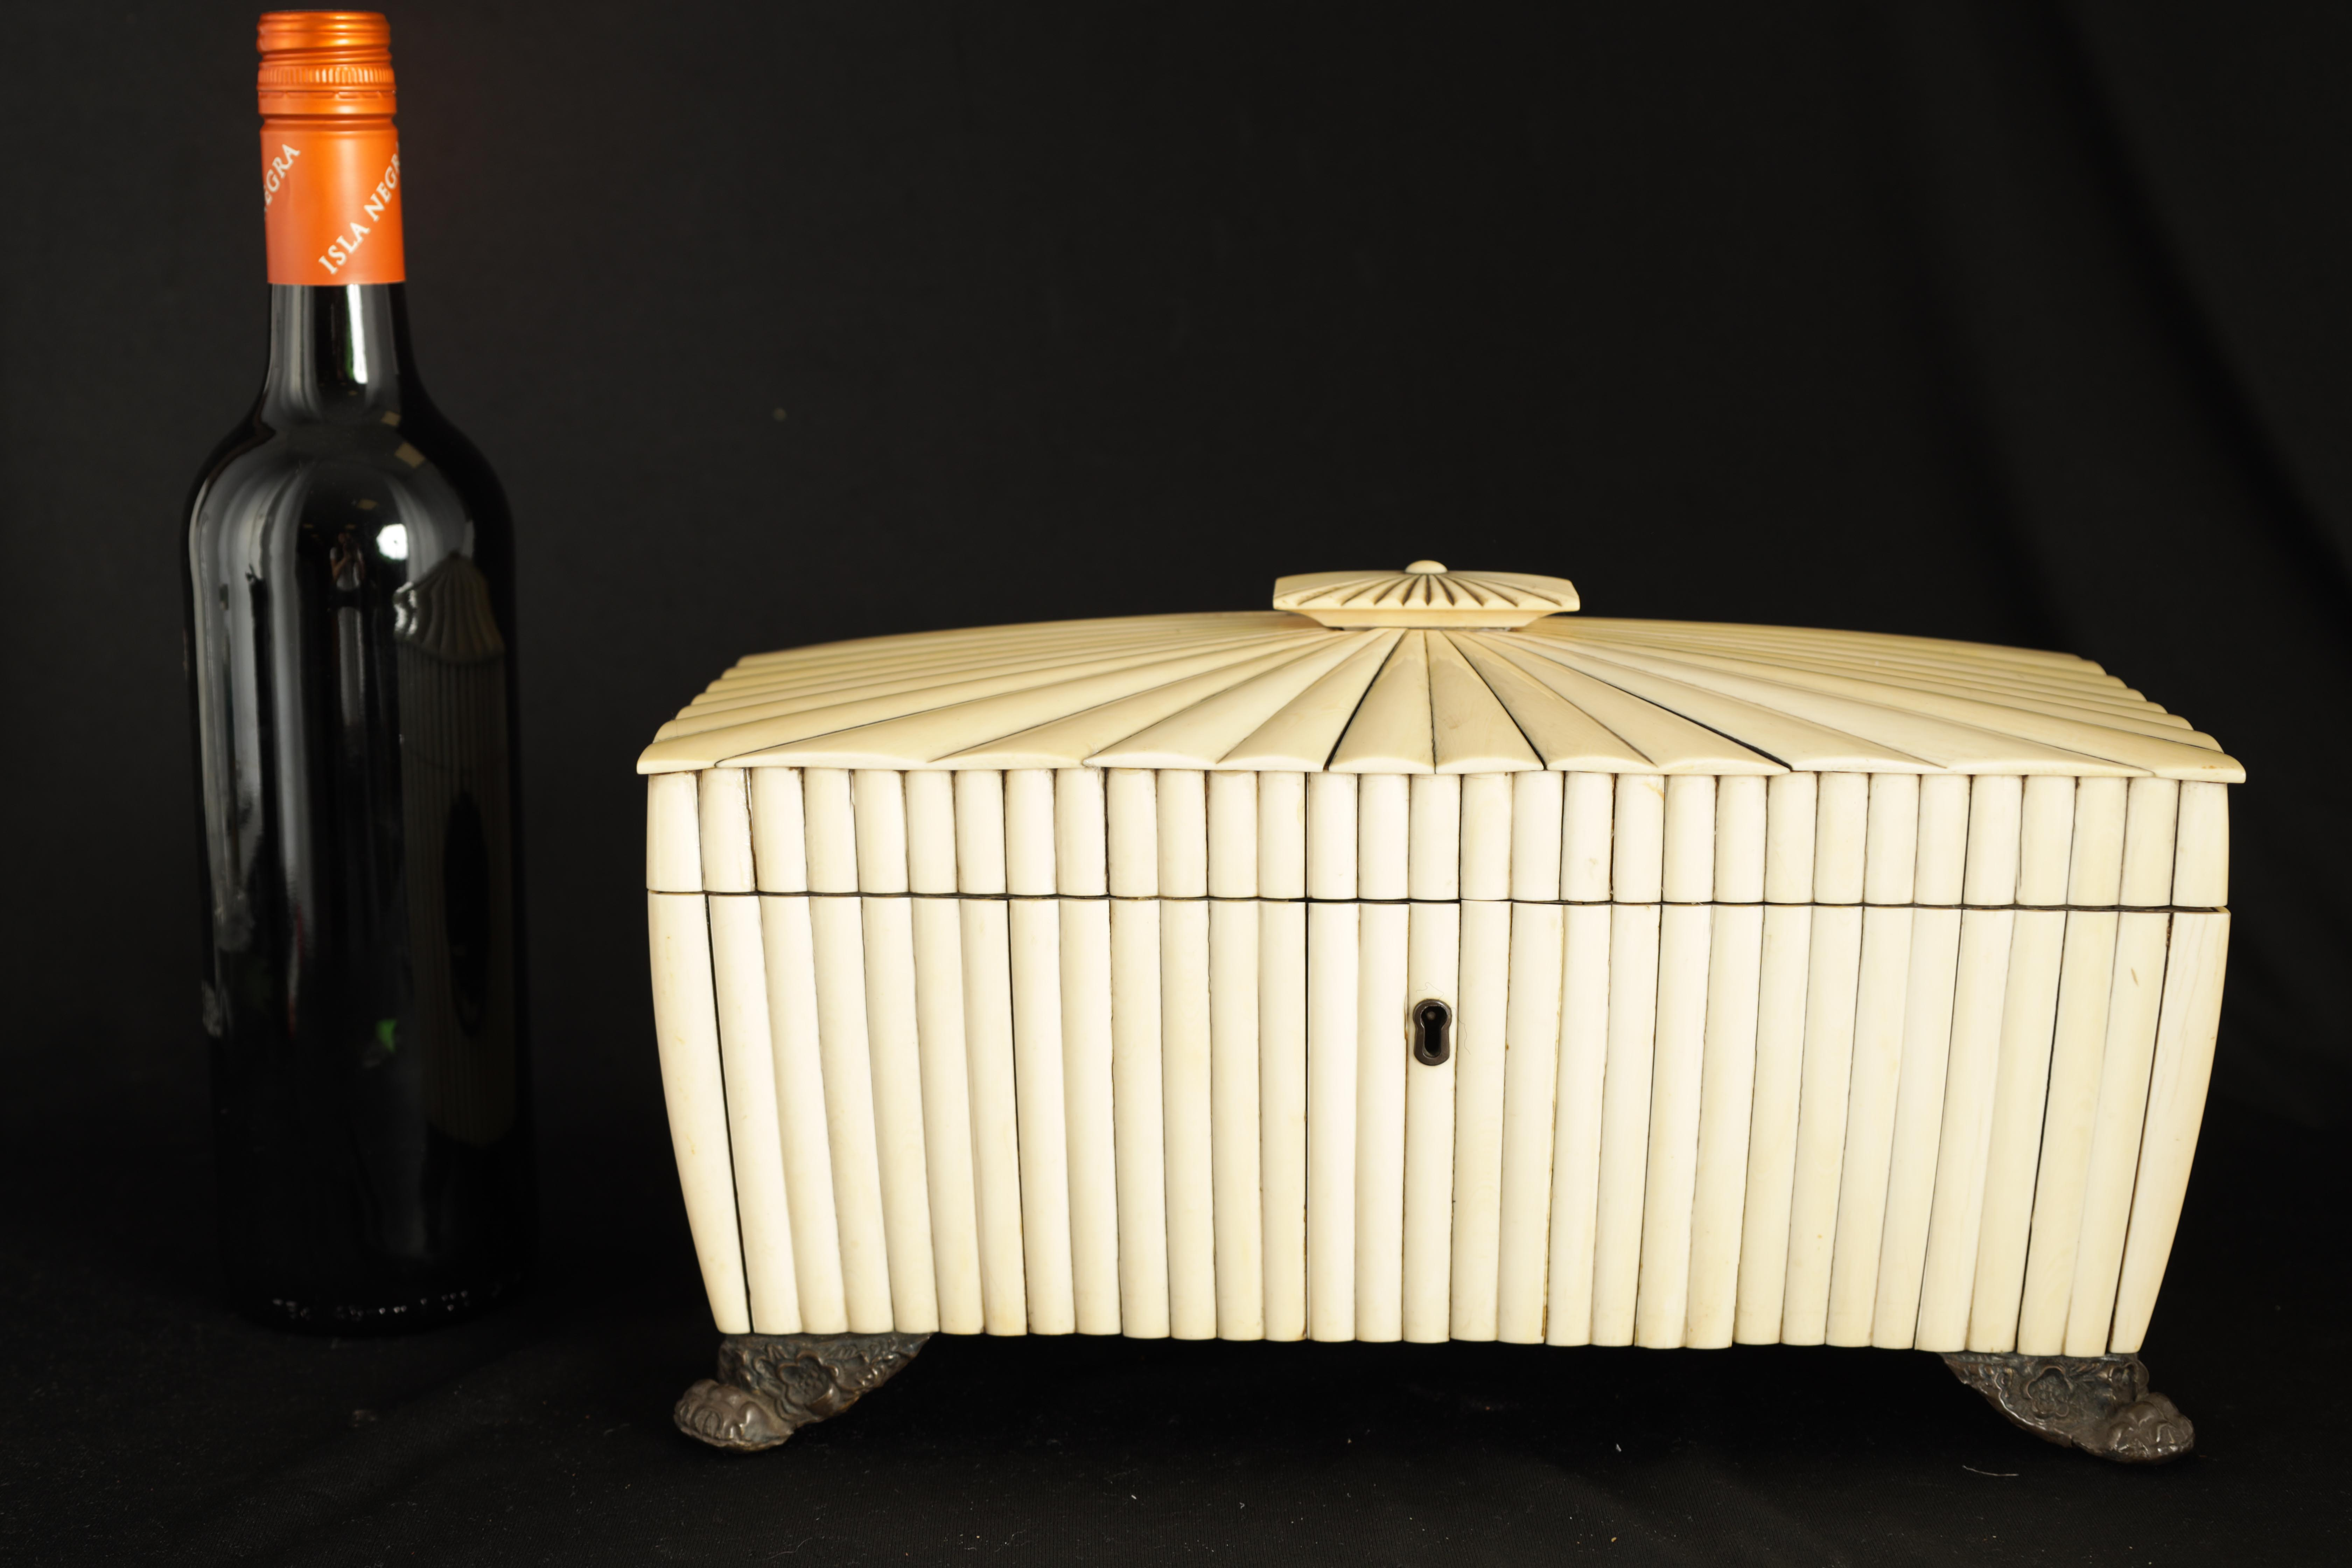 A REGENCY ANGLO-INDIAN IVORY AND SANDALWOOD VIZAGAPATAM TEA CADDY of sarcophagus form with gadroon - Image 11 of 12